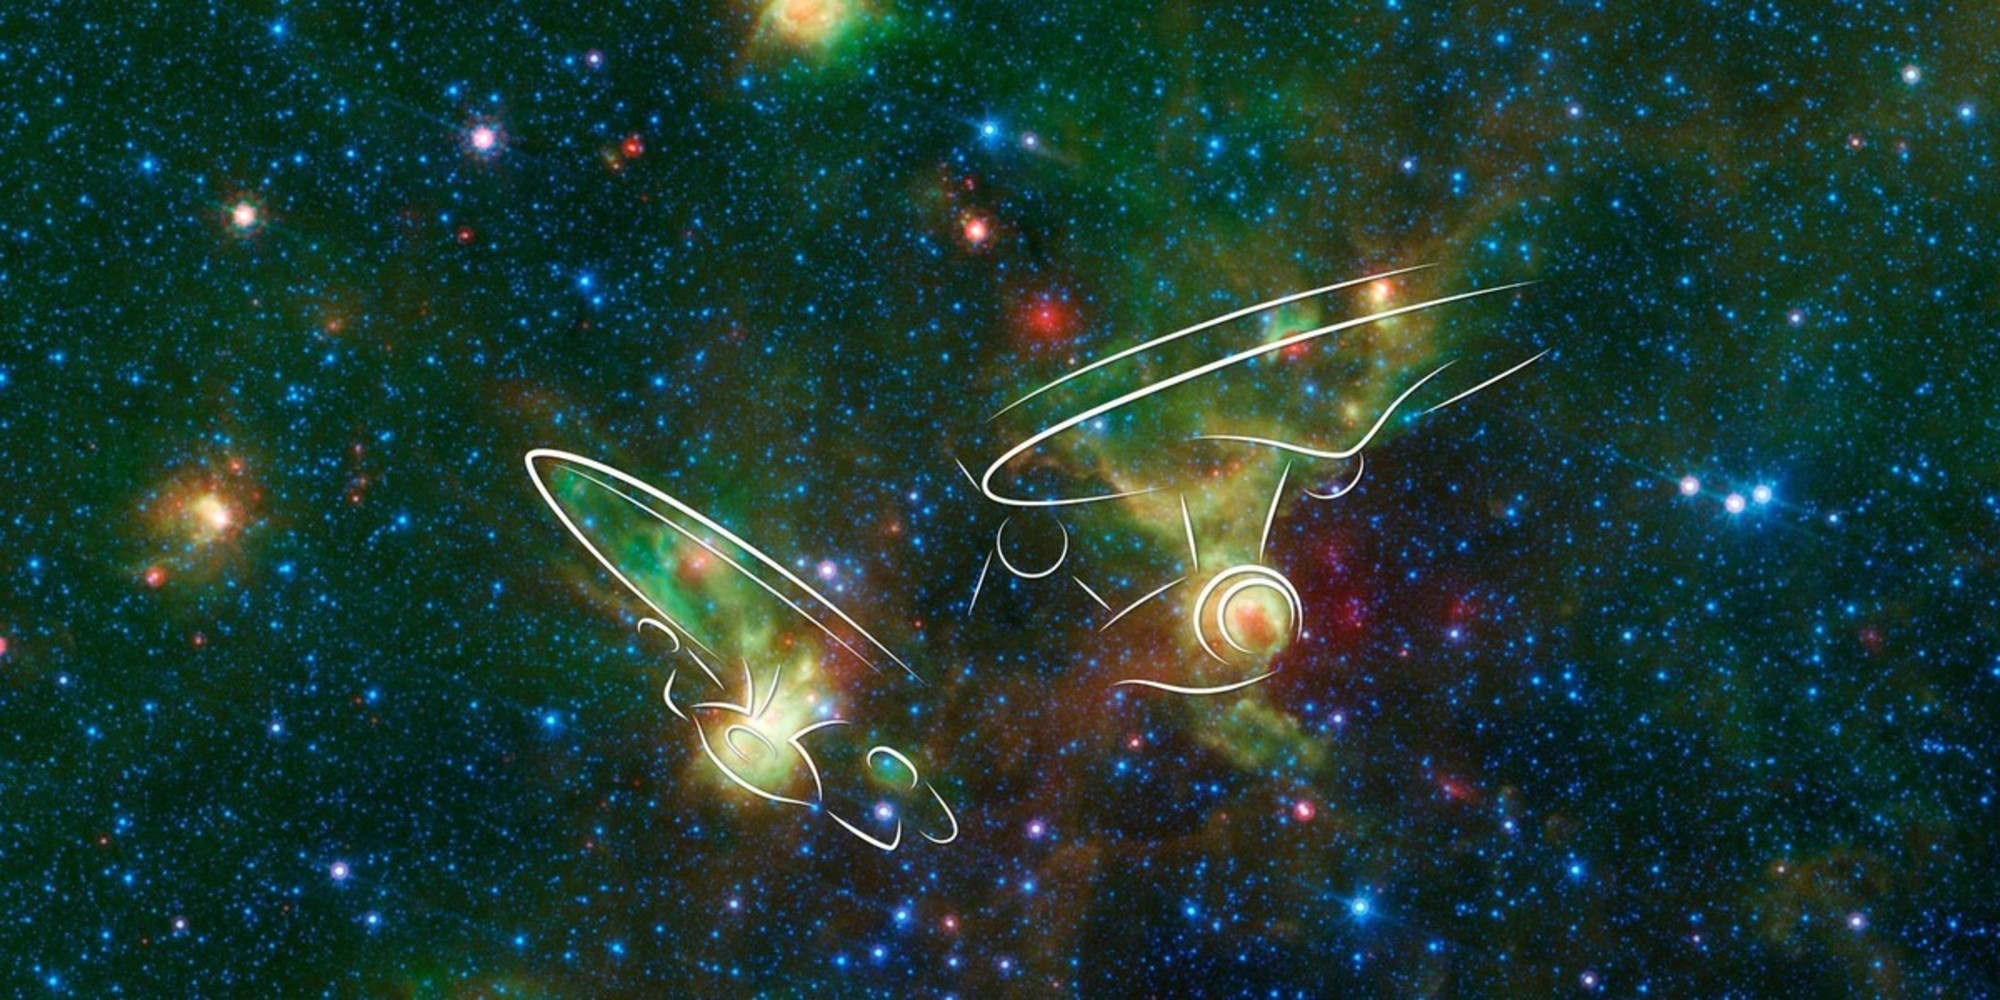 nasa-spitzer-space-telescope-see-star-trek-pareidolia-2